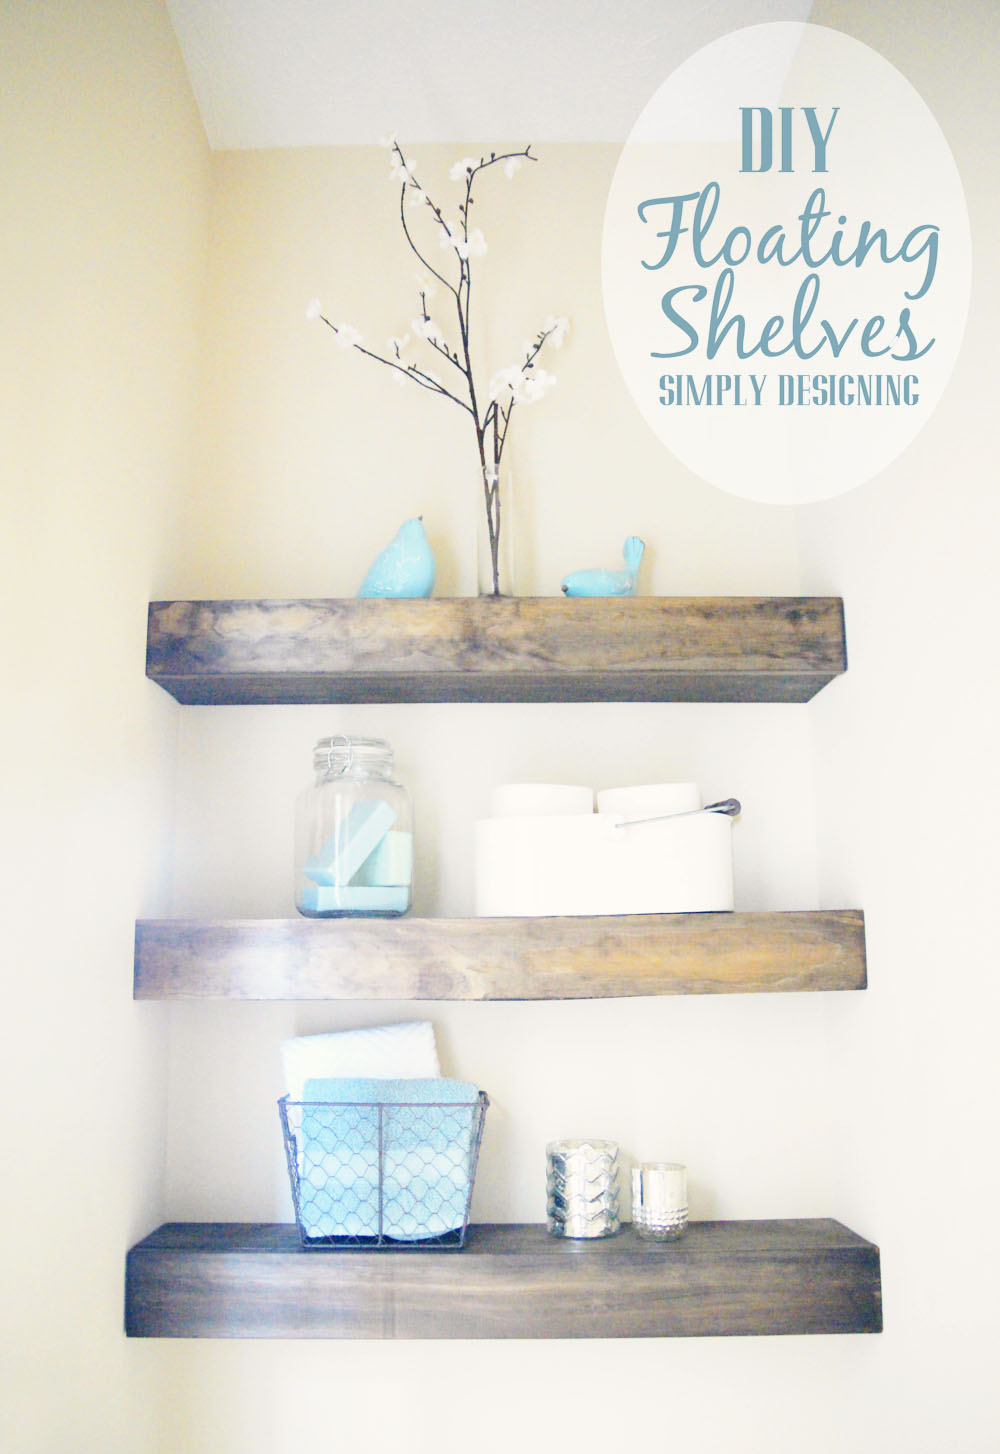 diy floating shelves how measure cut and install for bathroom are really easy make they the perfect white wood display corner pantry triangle shelf support vonhaus wall mount